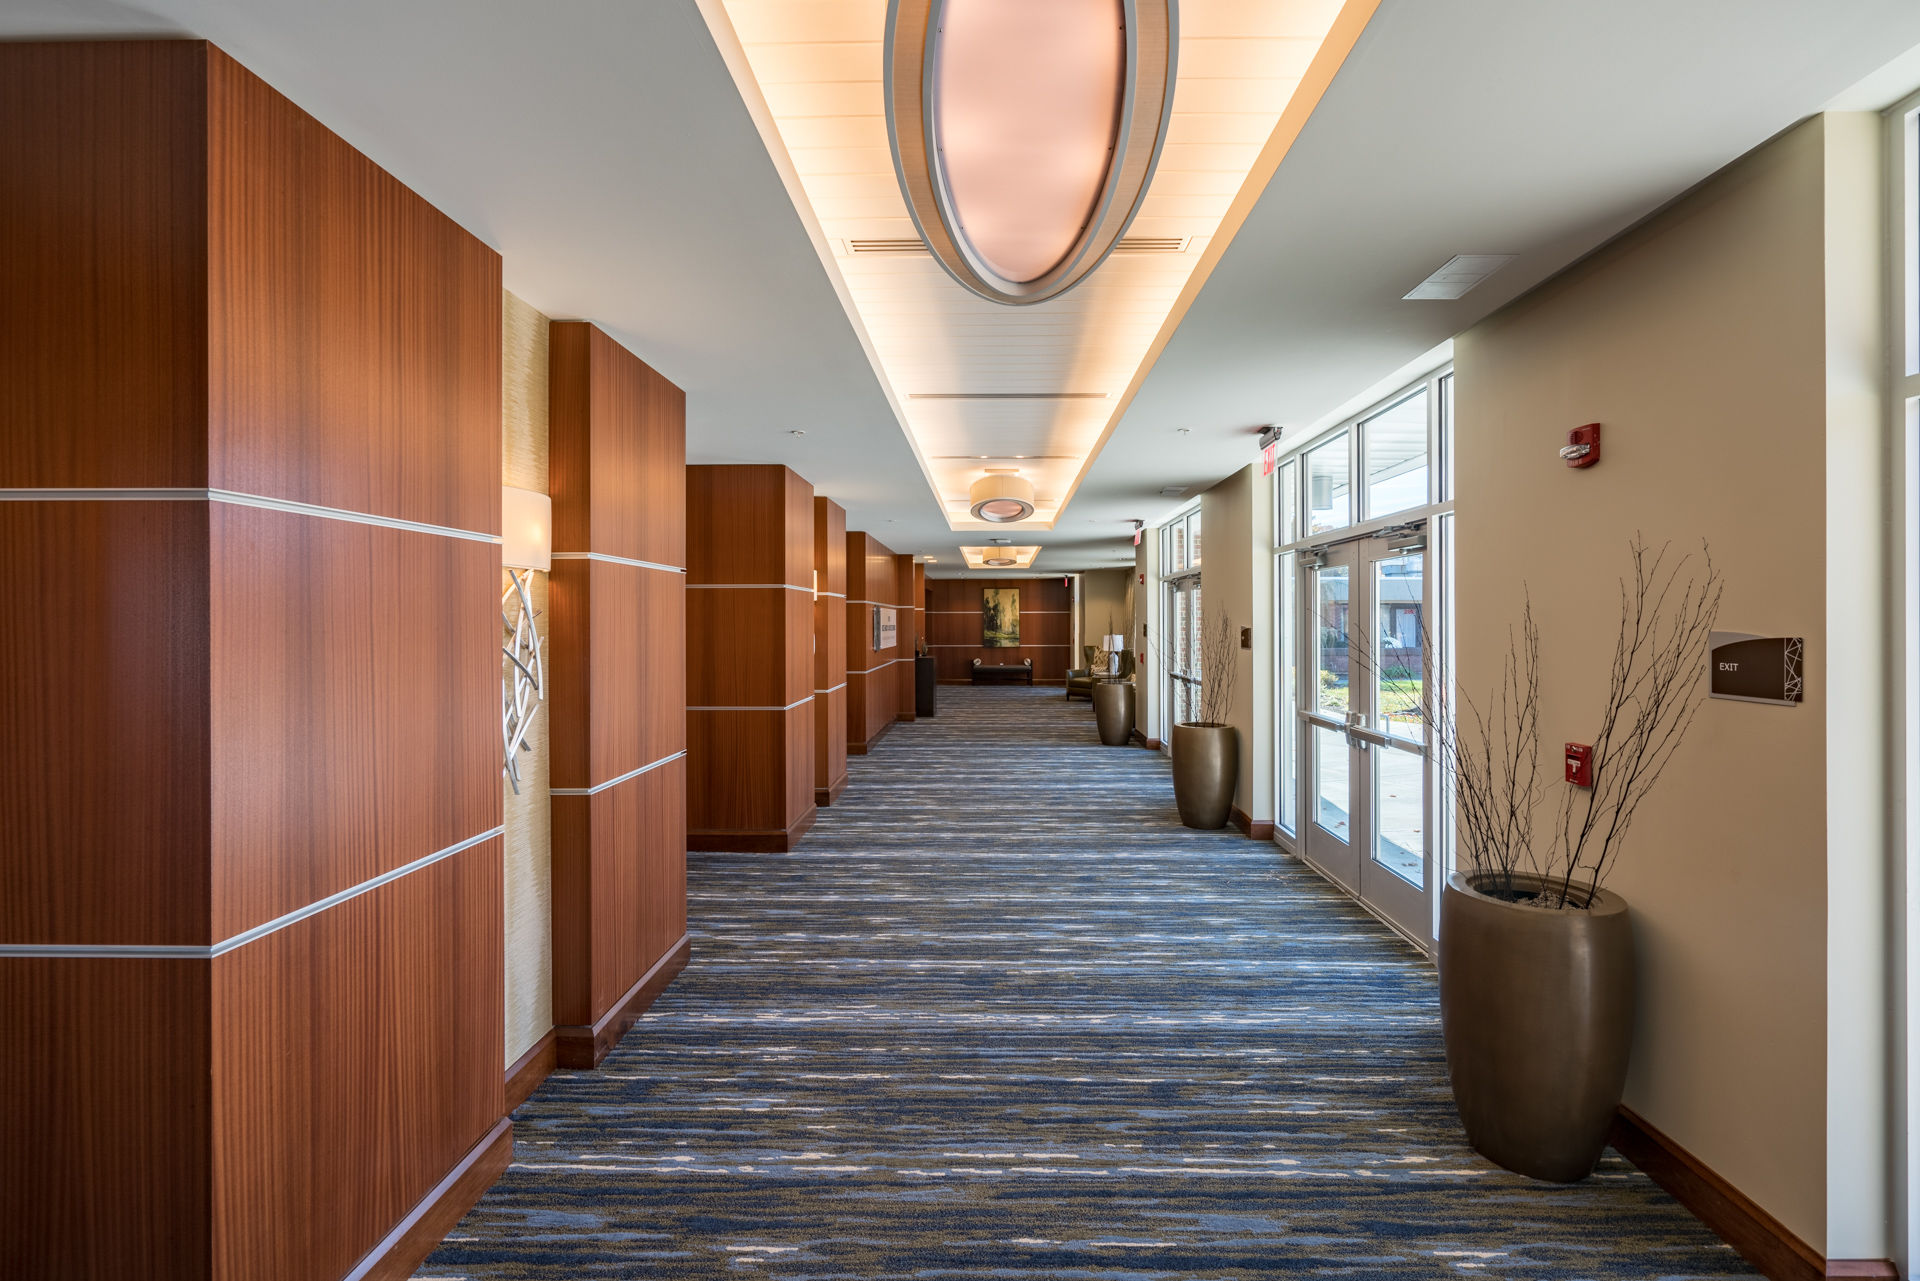 Rife Center Mechanicsburg Pennsylvania lobby gathering space THW senior living architects